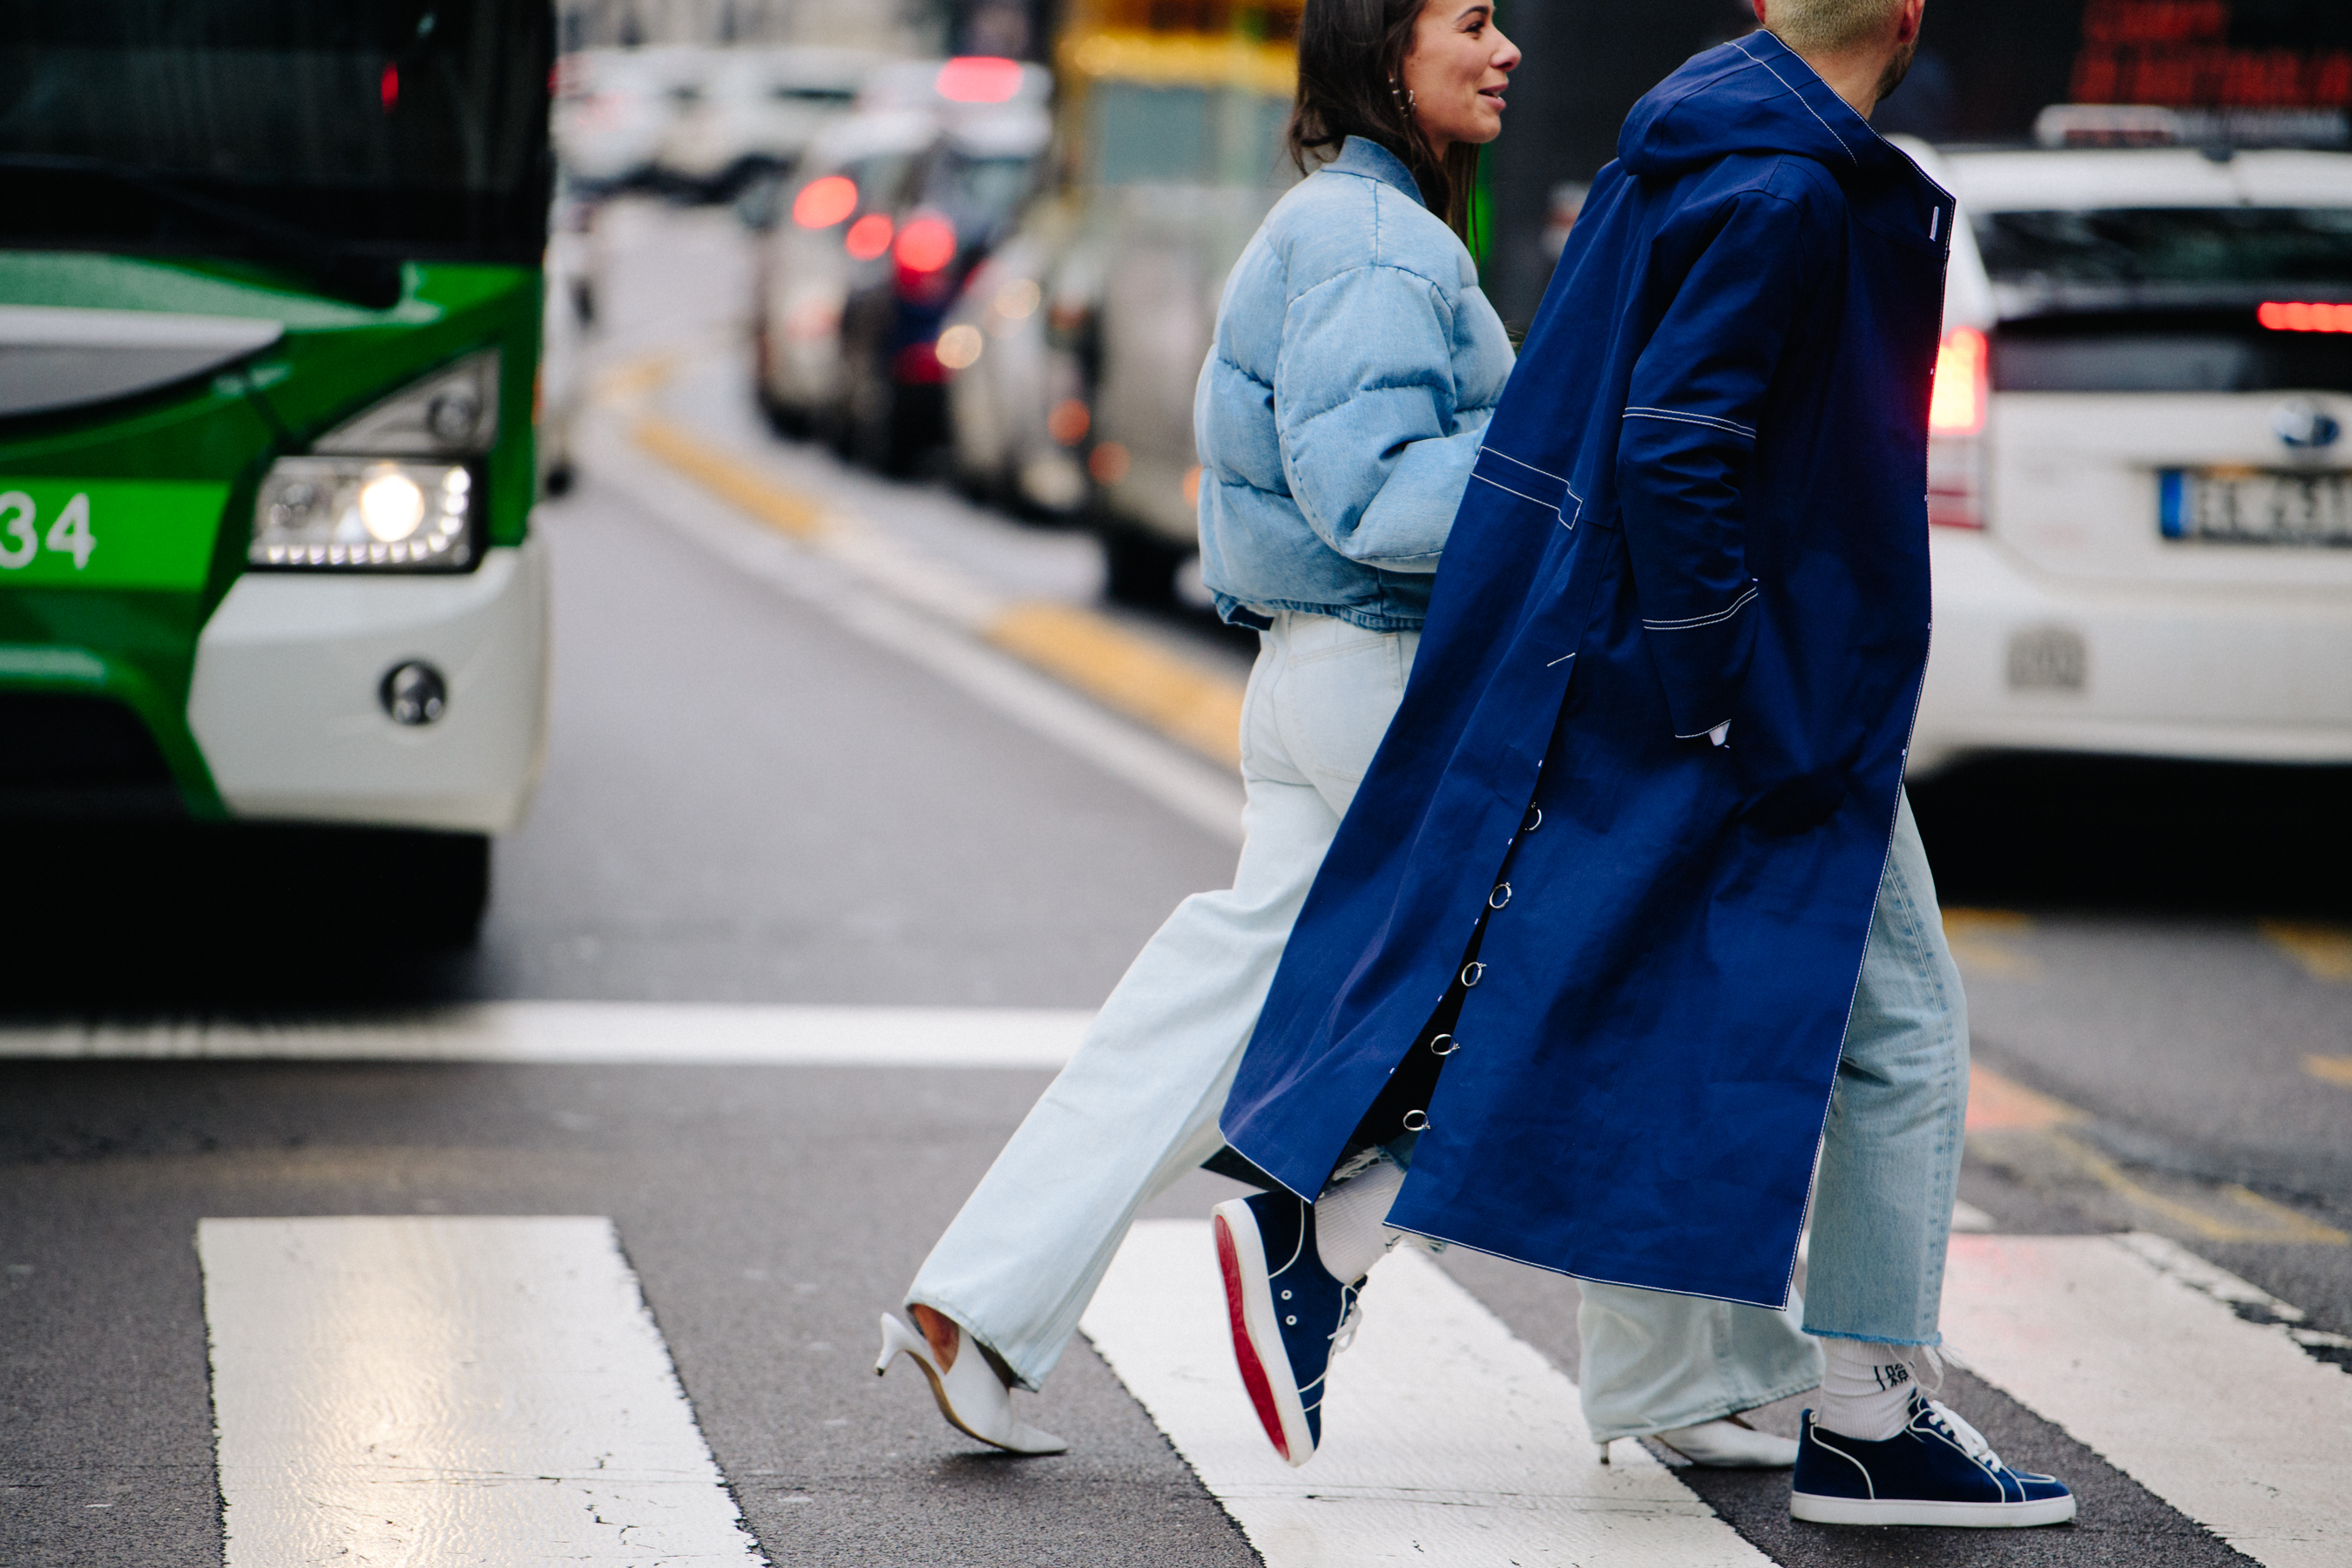 Couple wearing blue outfits